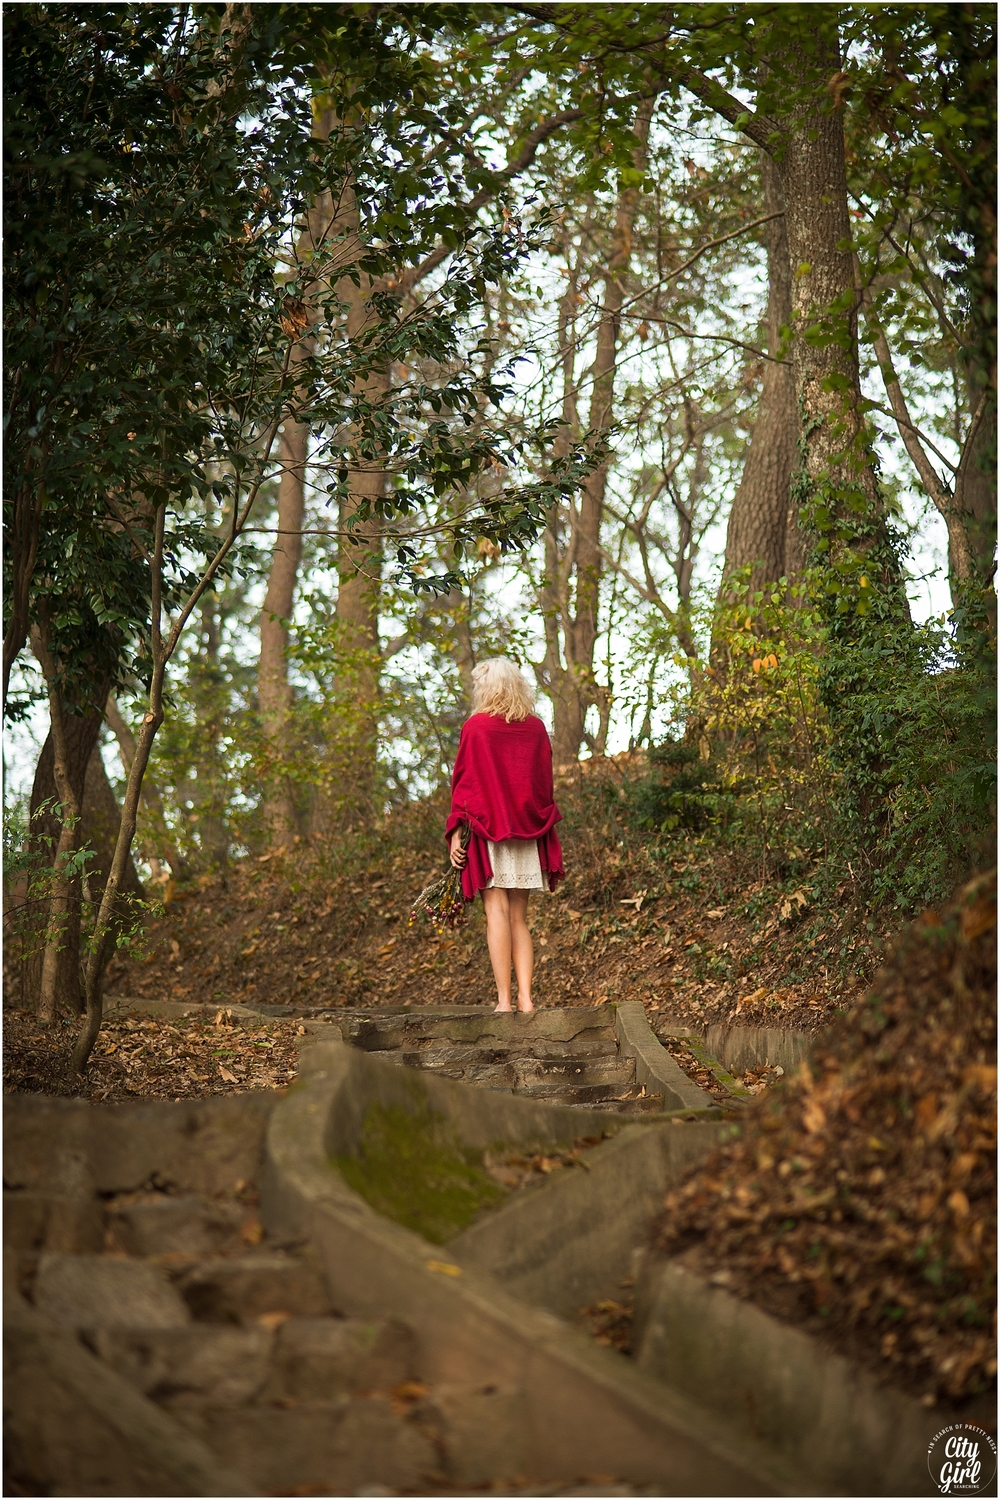 Red Riding Hood Styled Photoshoot South Korea CityGirlSearching Photography (42 of 95).jpg